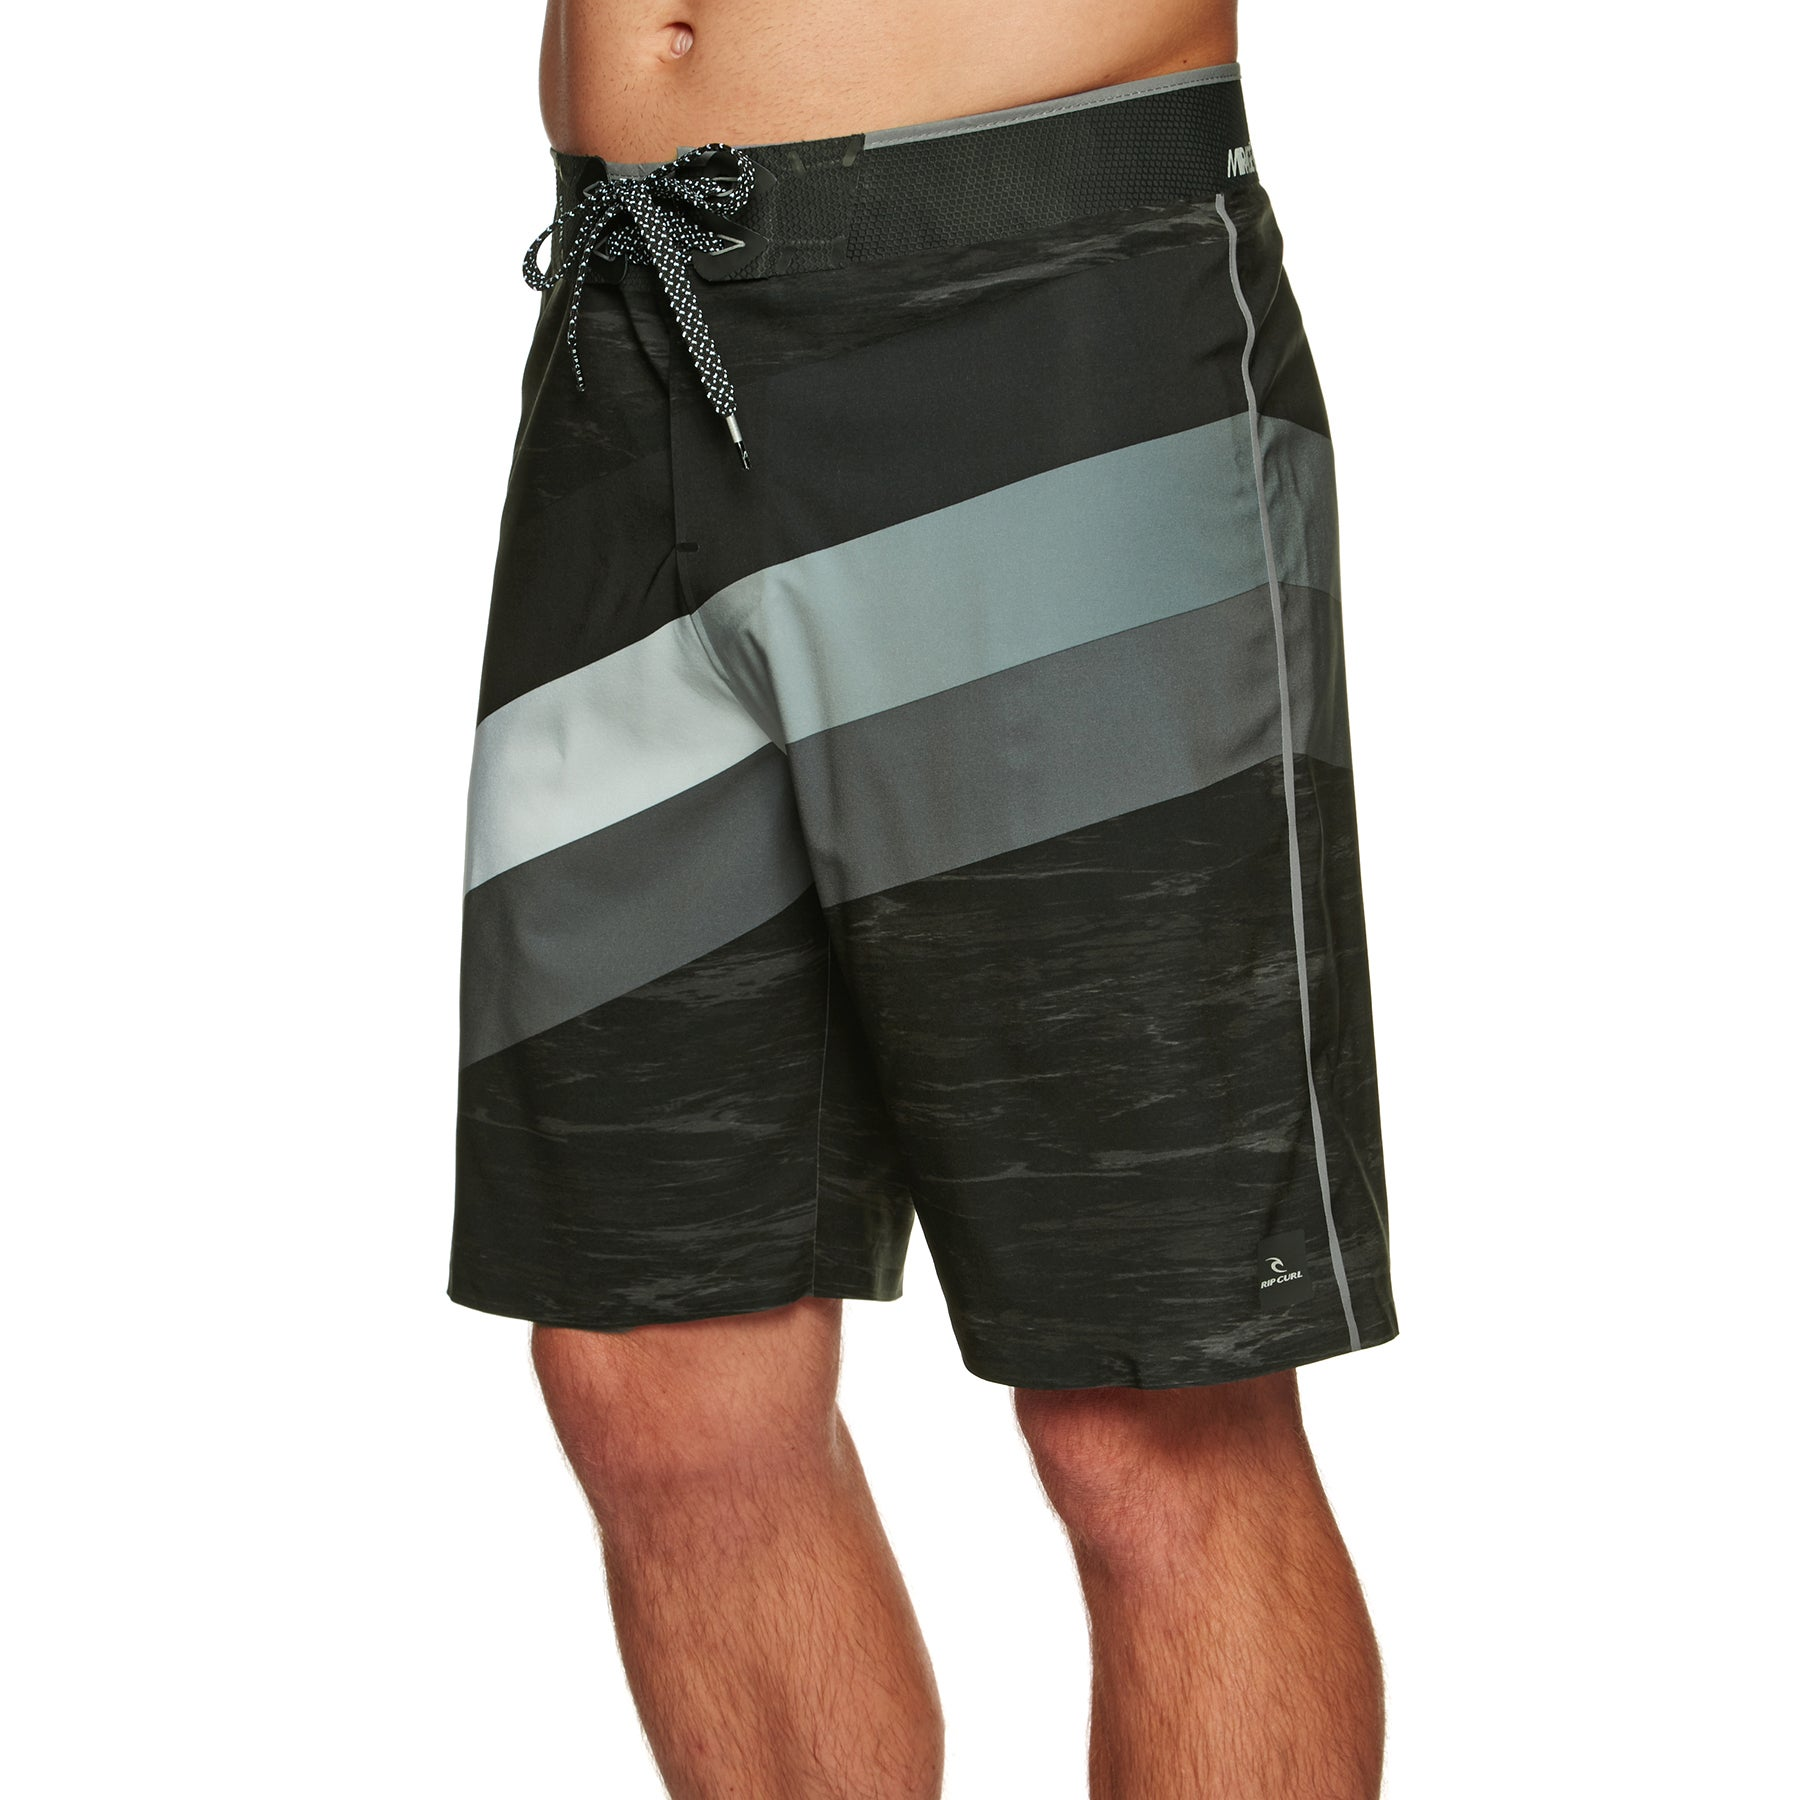 Rip Mf 20in Mirage React Ultimate Boardshorts Curl kiuZOPX